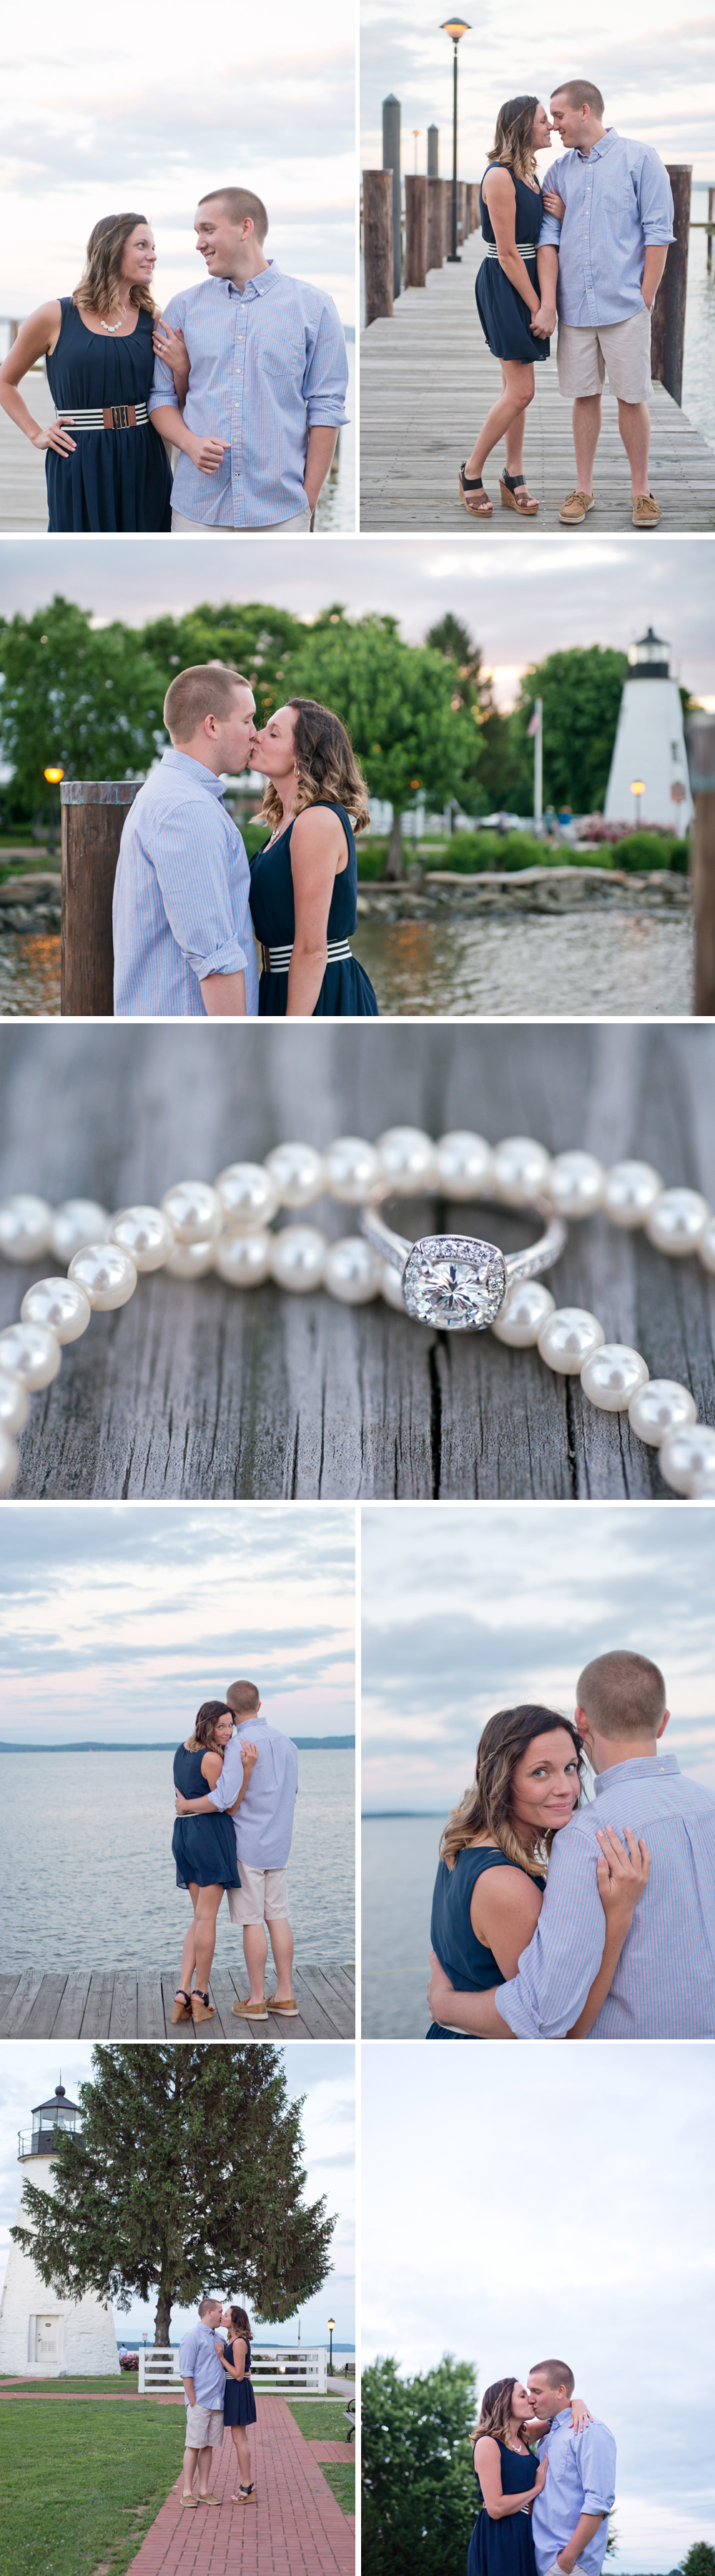 Harford_County_Engagement-13